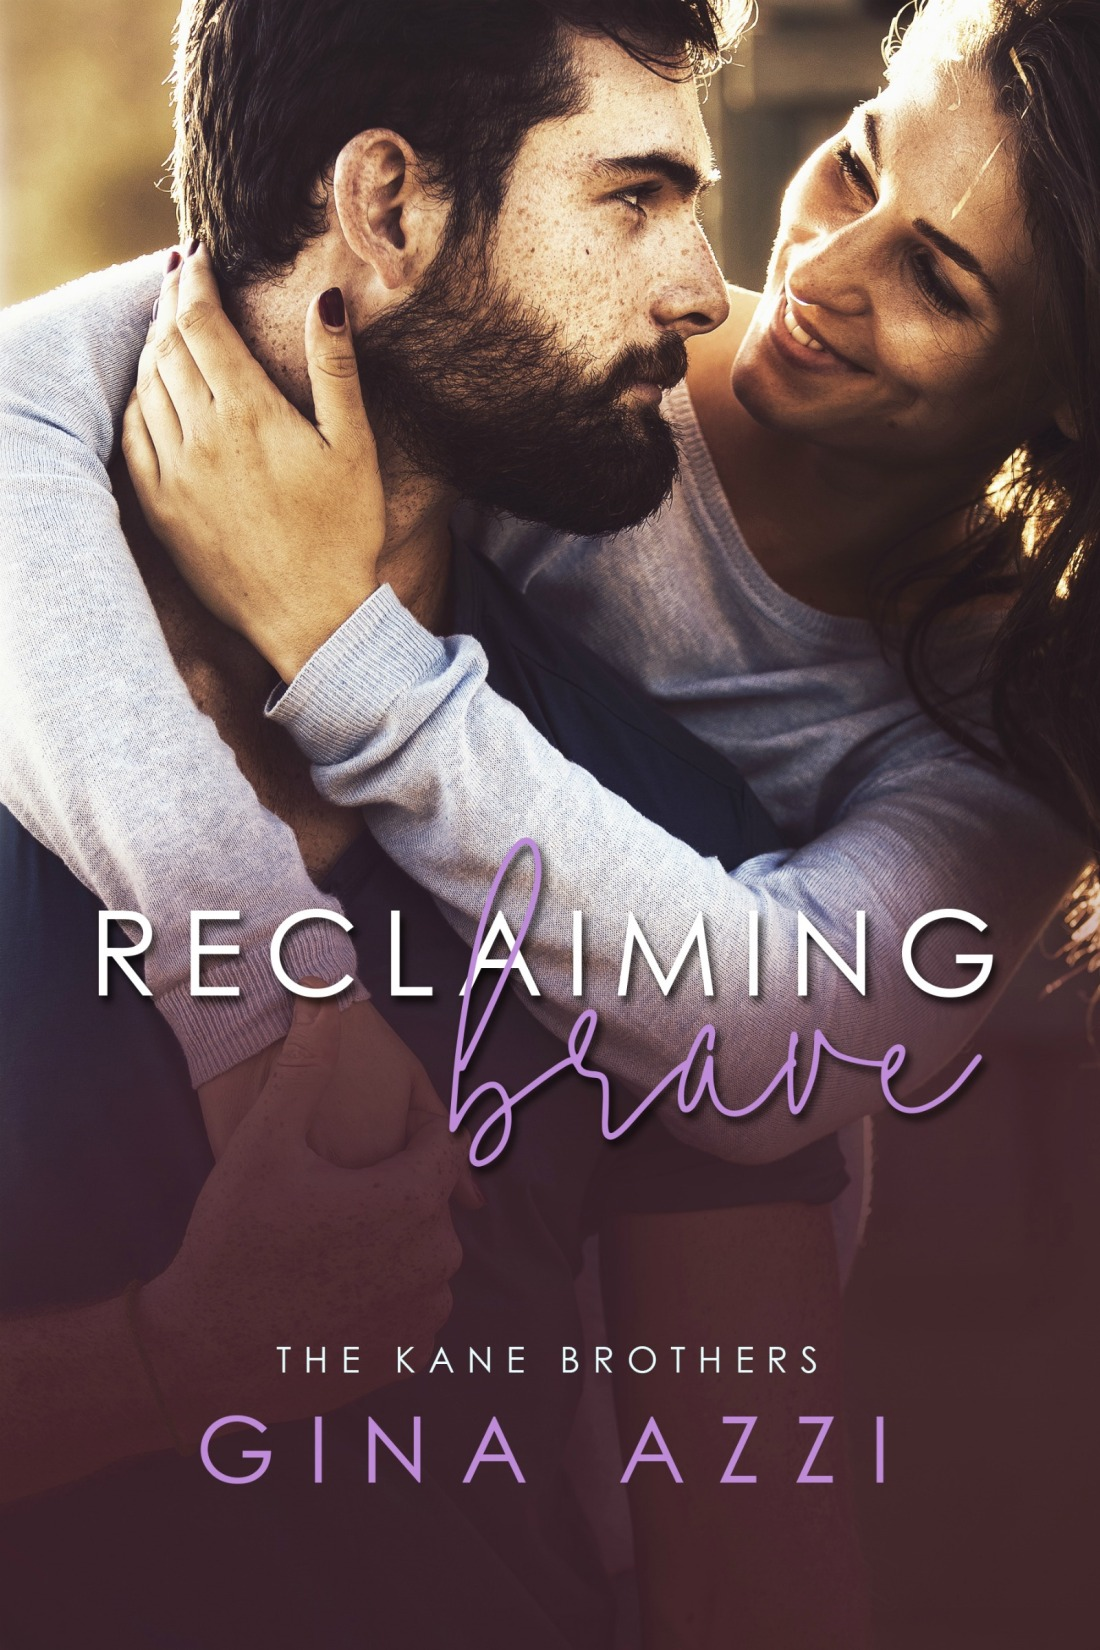 Reclaiming Brave Ebook Cover